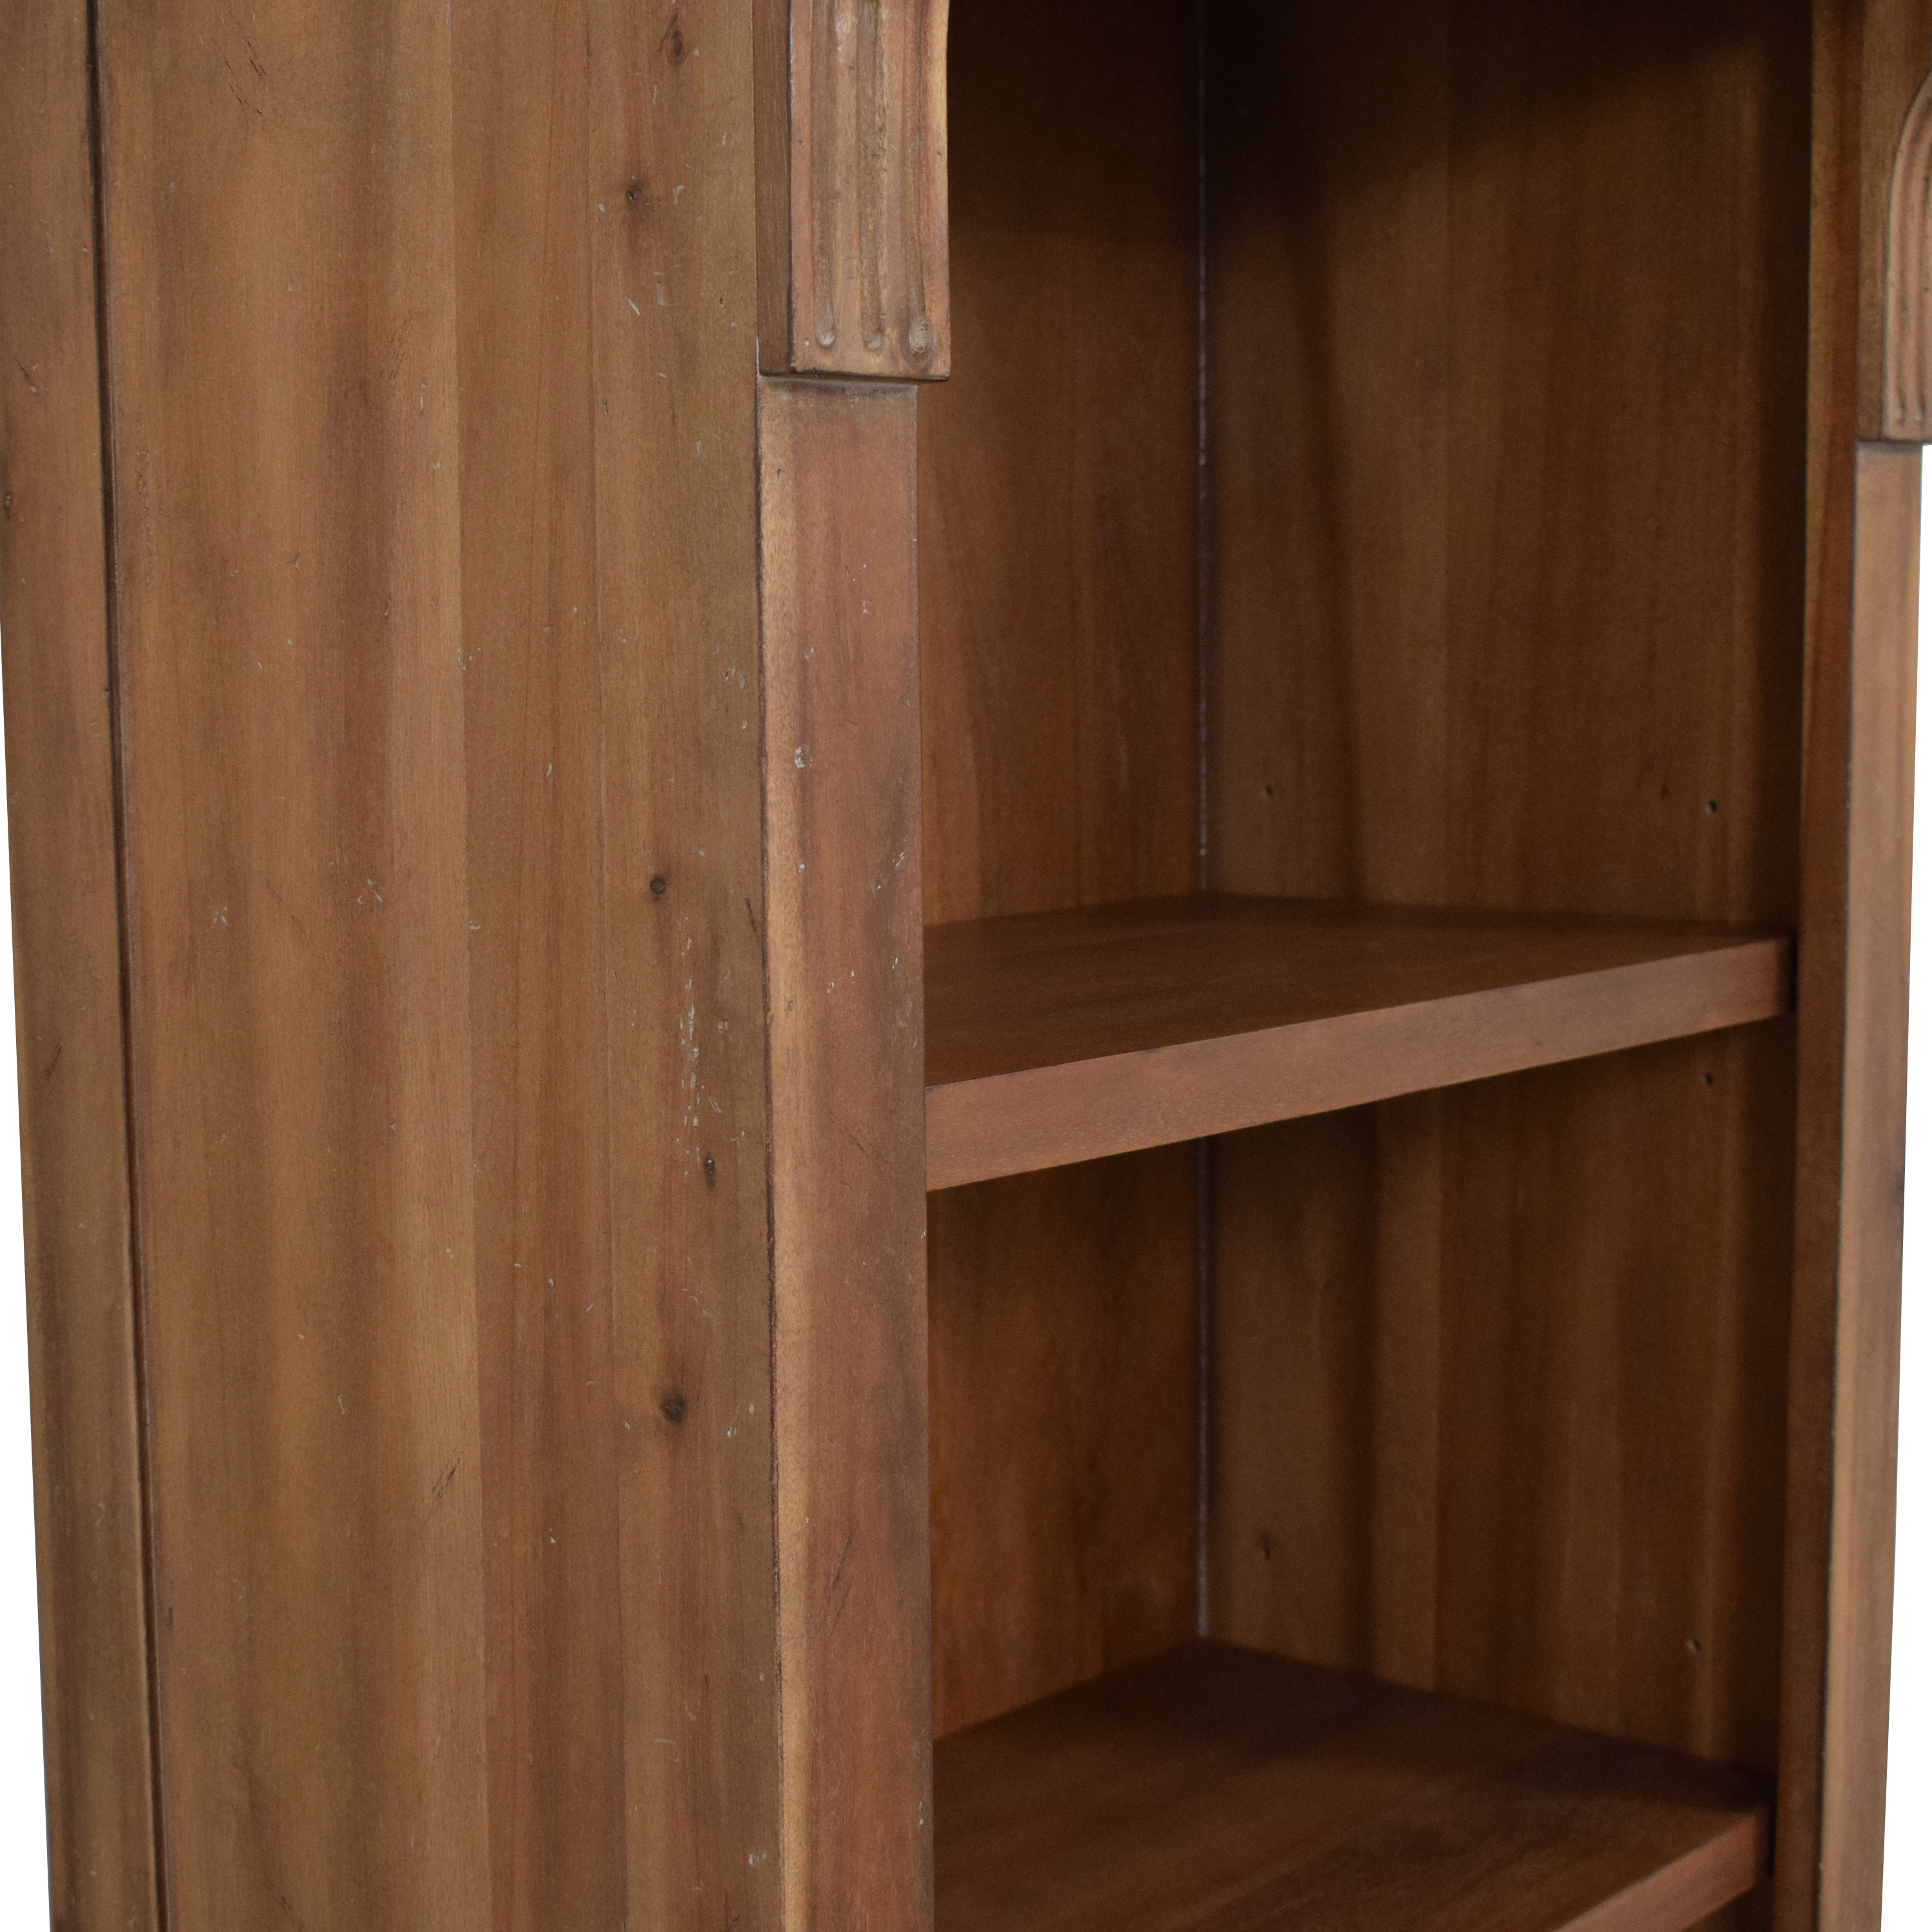 Restoration Hardware Restoration Hardware St James Tower Shelving second hand